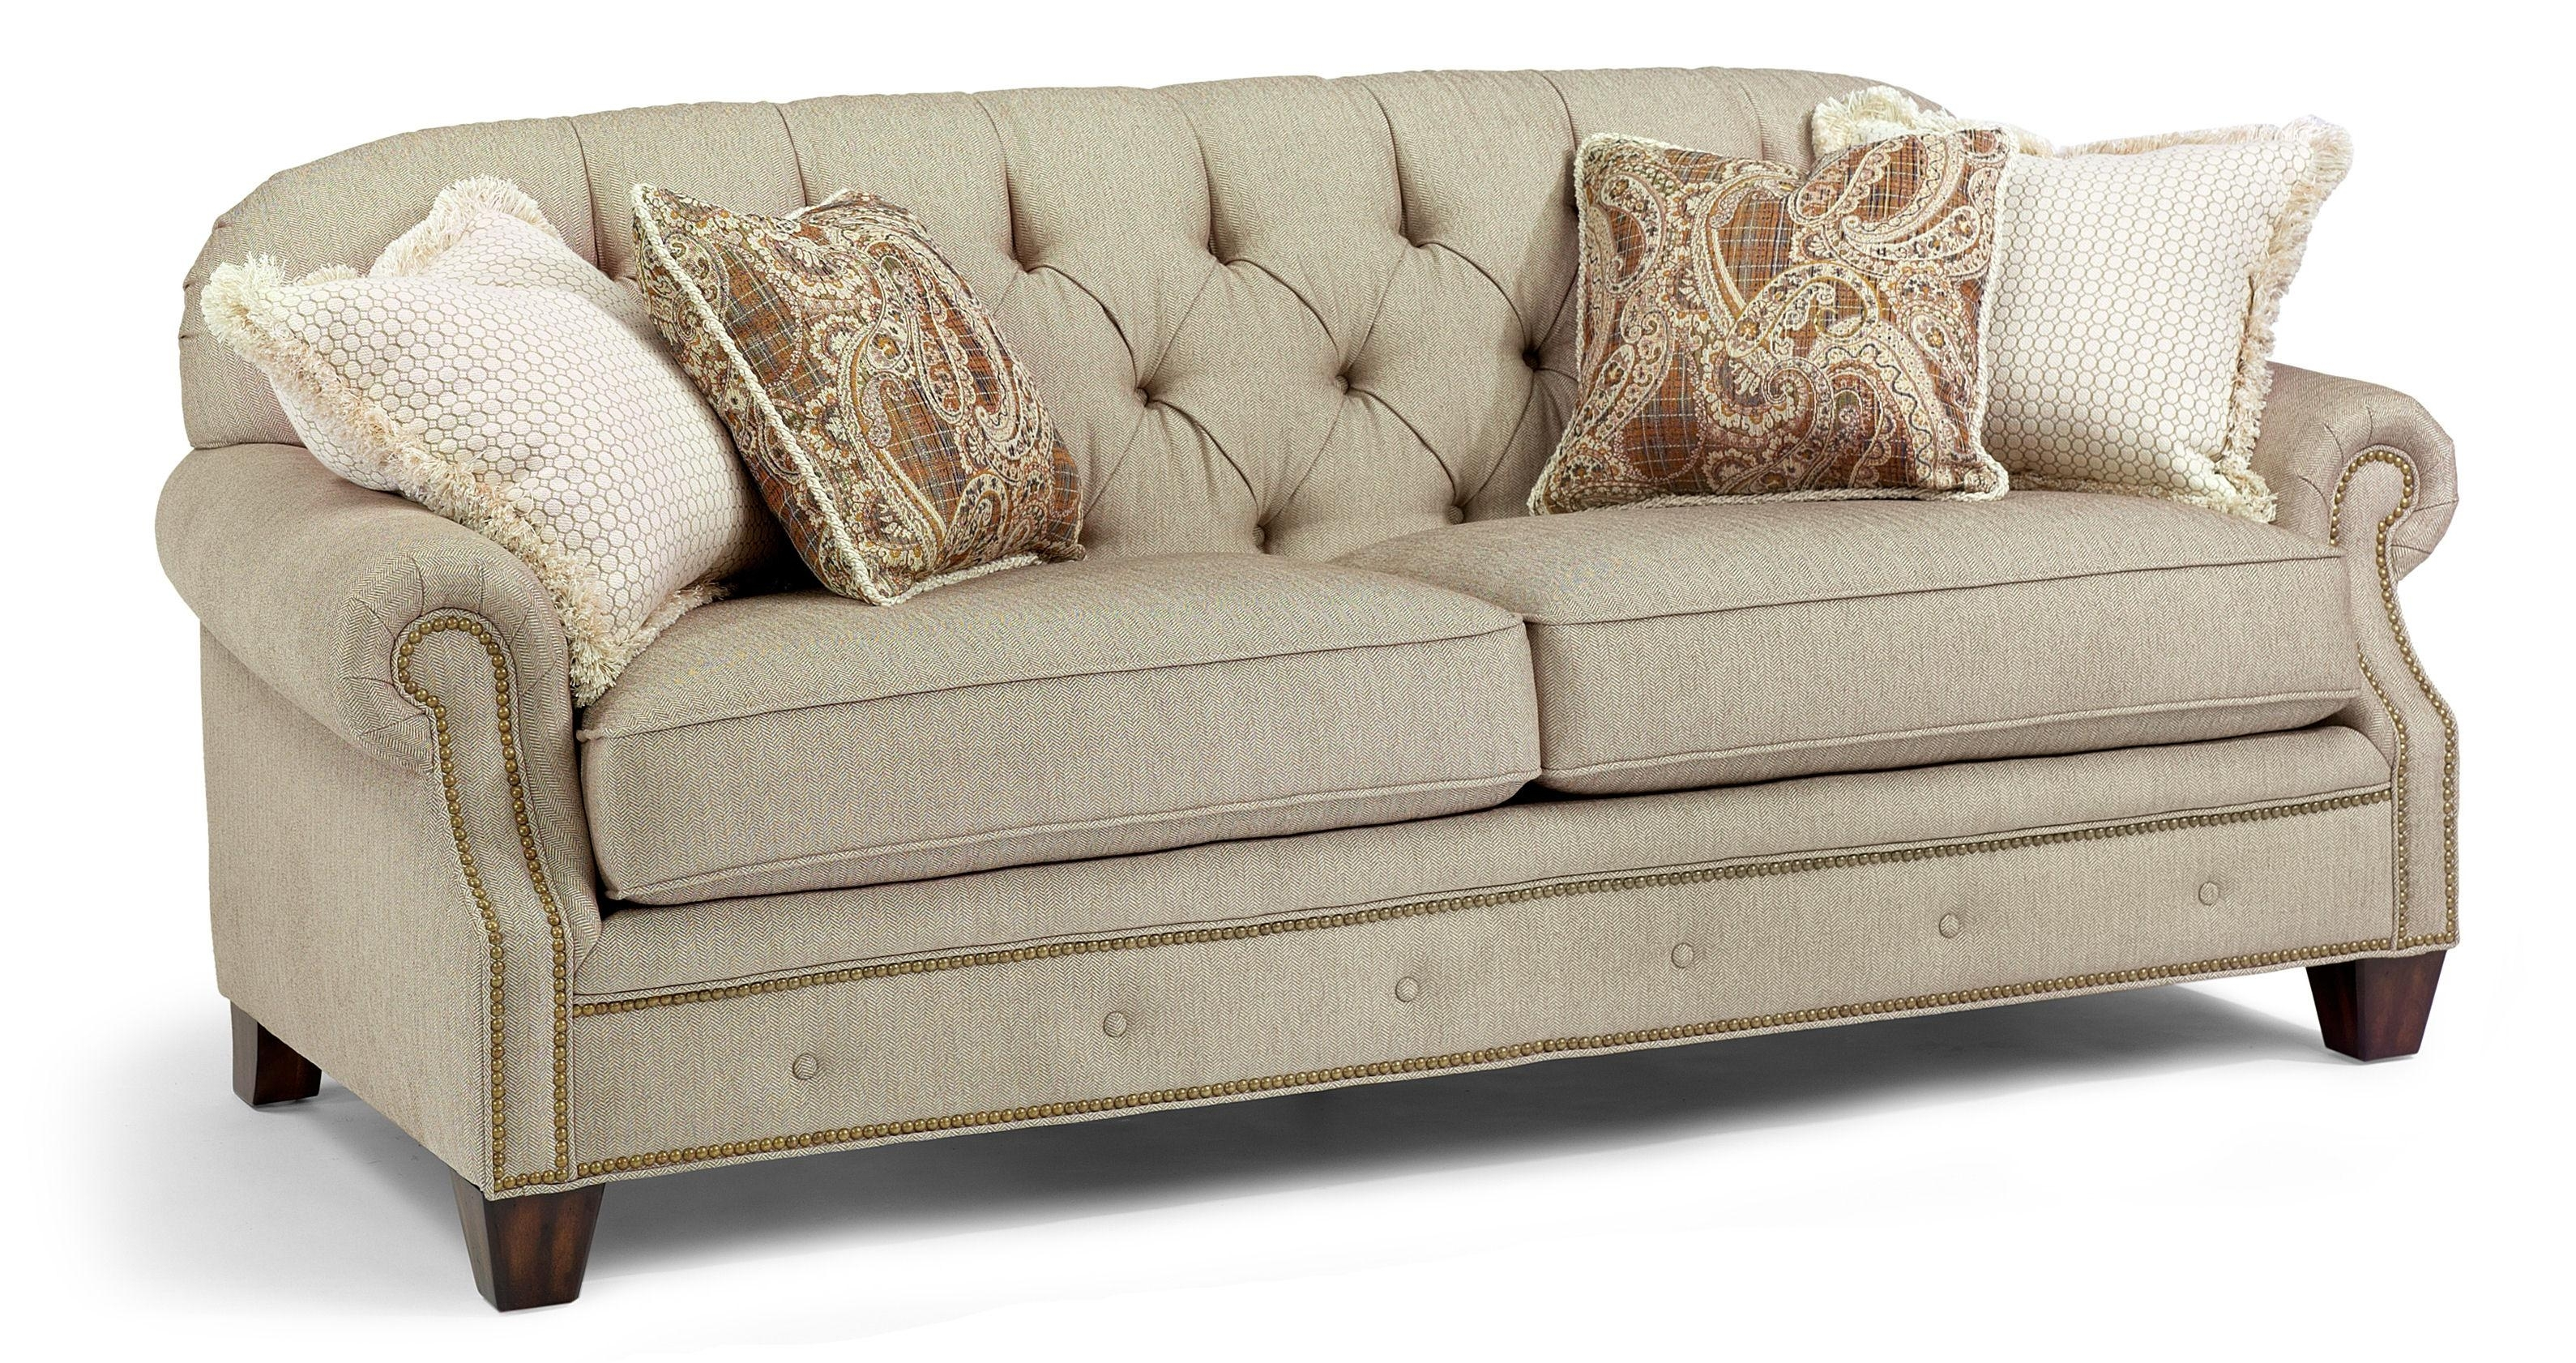 Flexsteel Champion Transitional Button Tufted Sofa With Rolled Arms For Ashley Tufted Sofas (View 10 of 10)